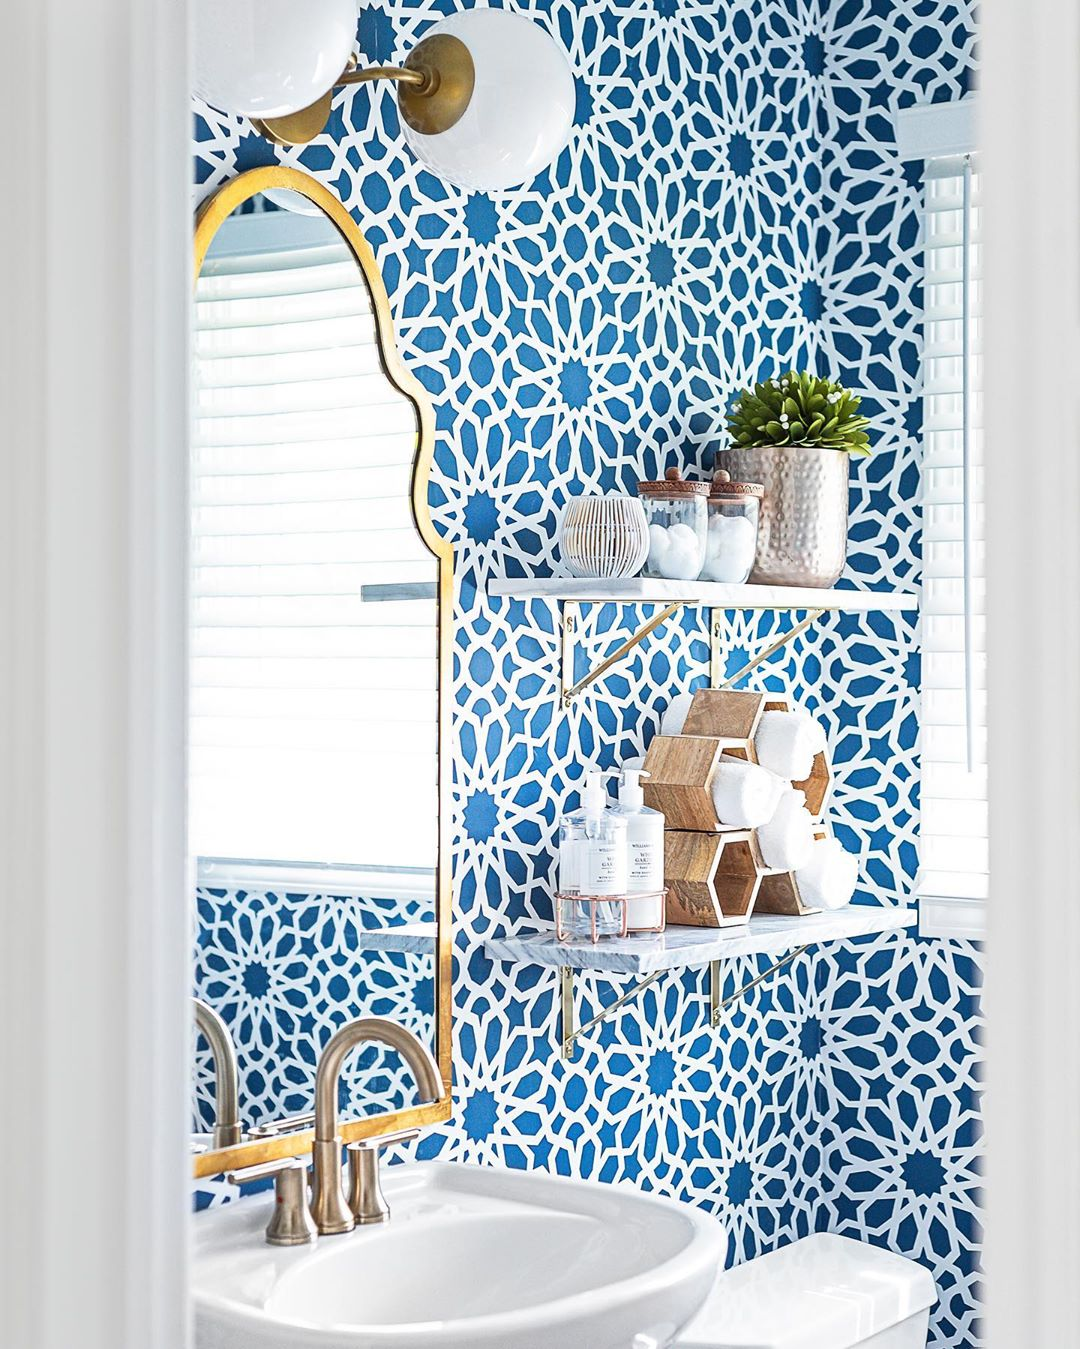 Bathroom with teal and white geometric wallpaper from Chad Esslinger Design (@chadesslingerdesign) on Instagram